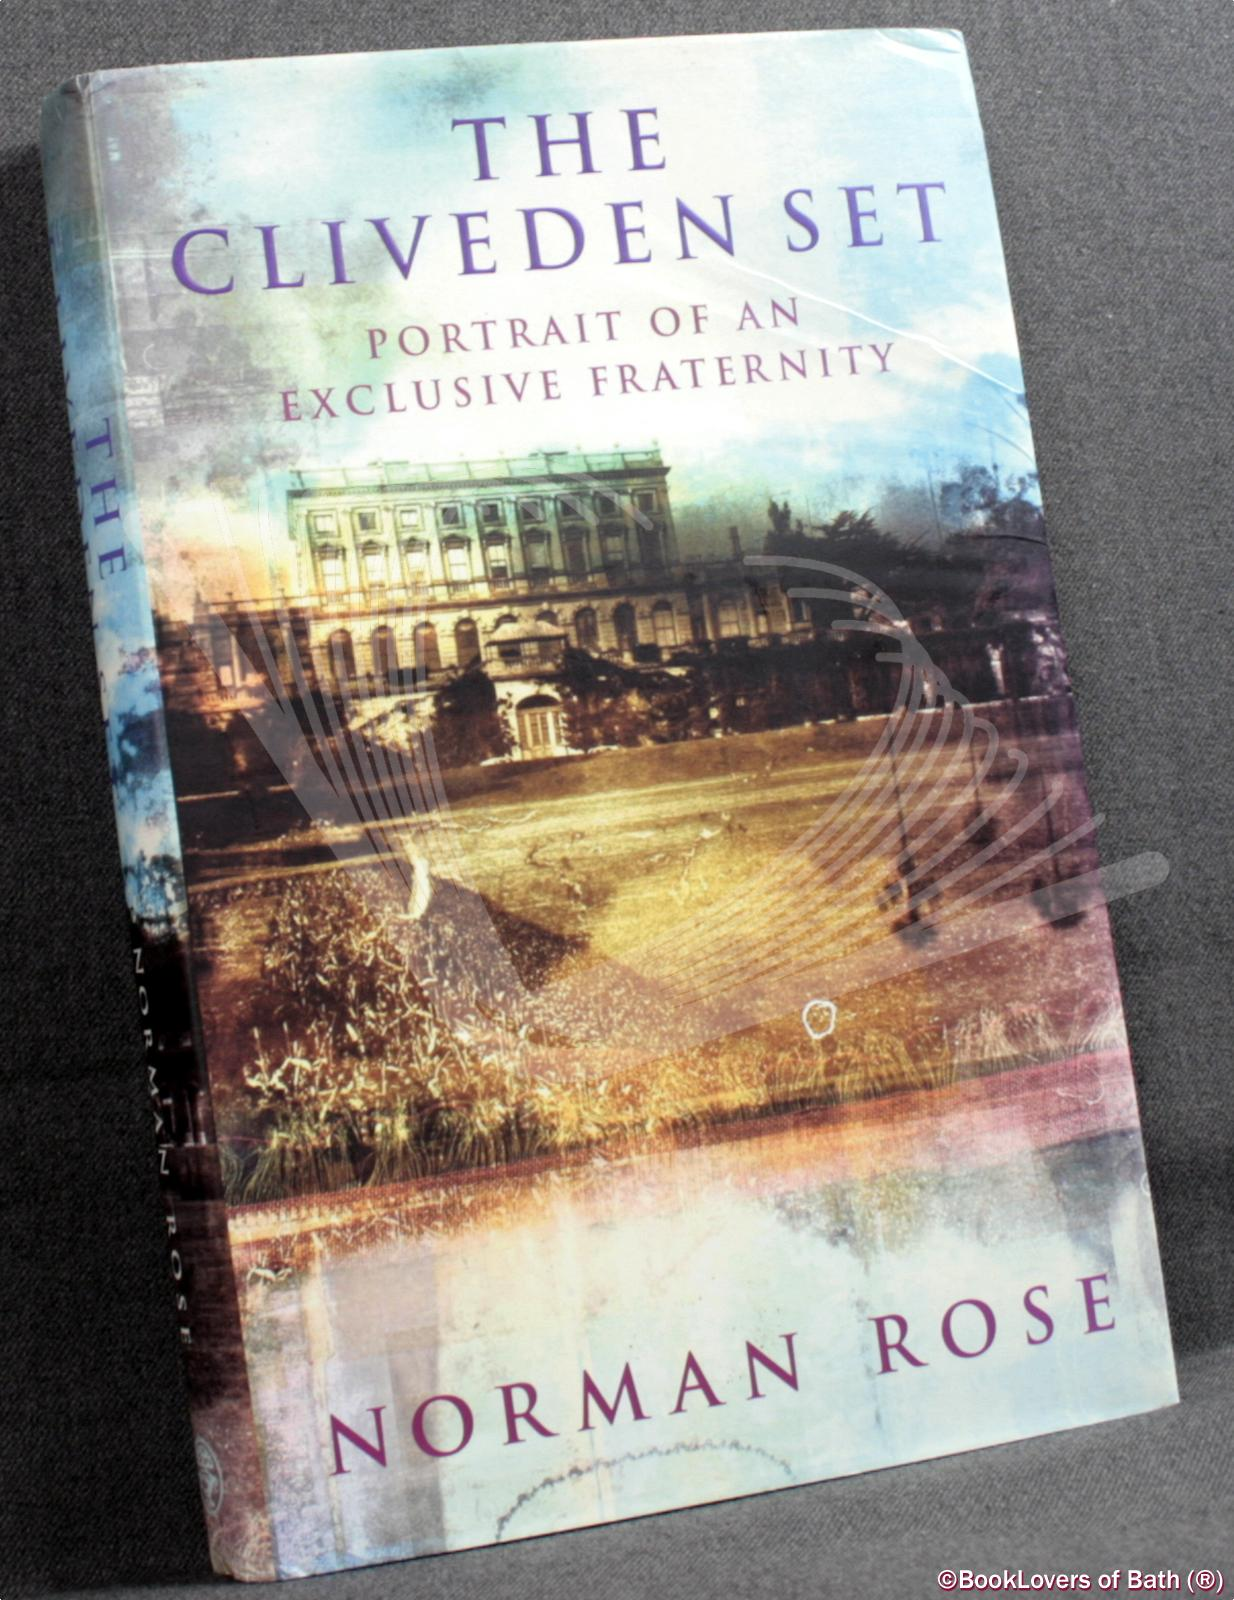 The Cliveden Set: Portrait of an Exclusive Fraternity - Norman Rose